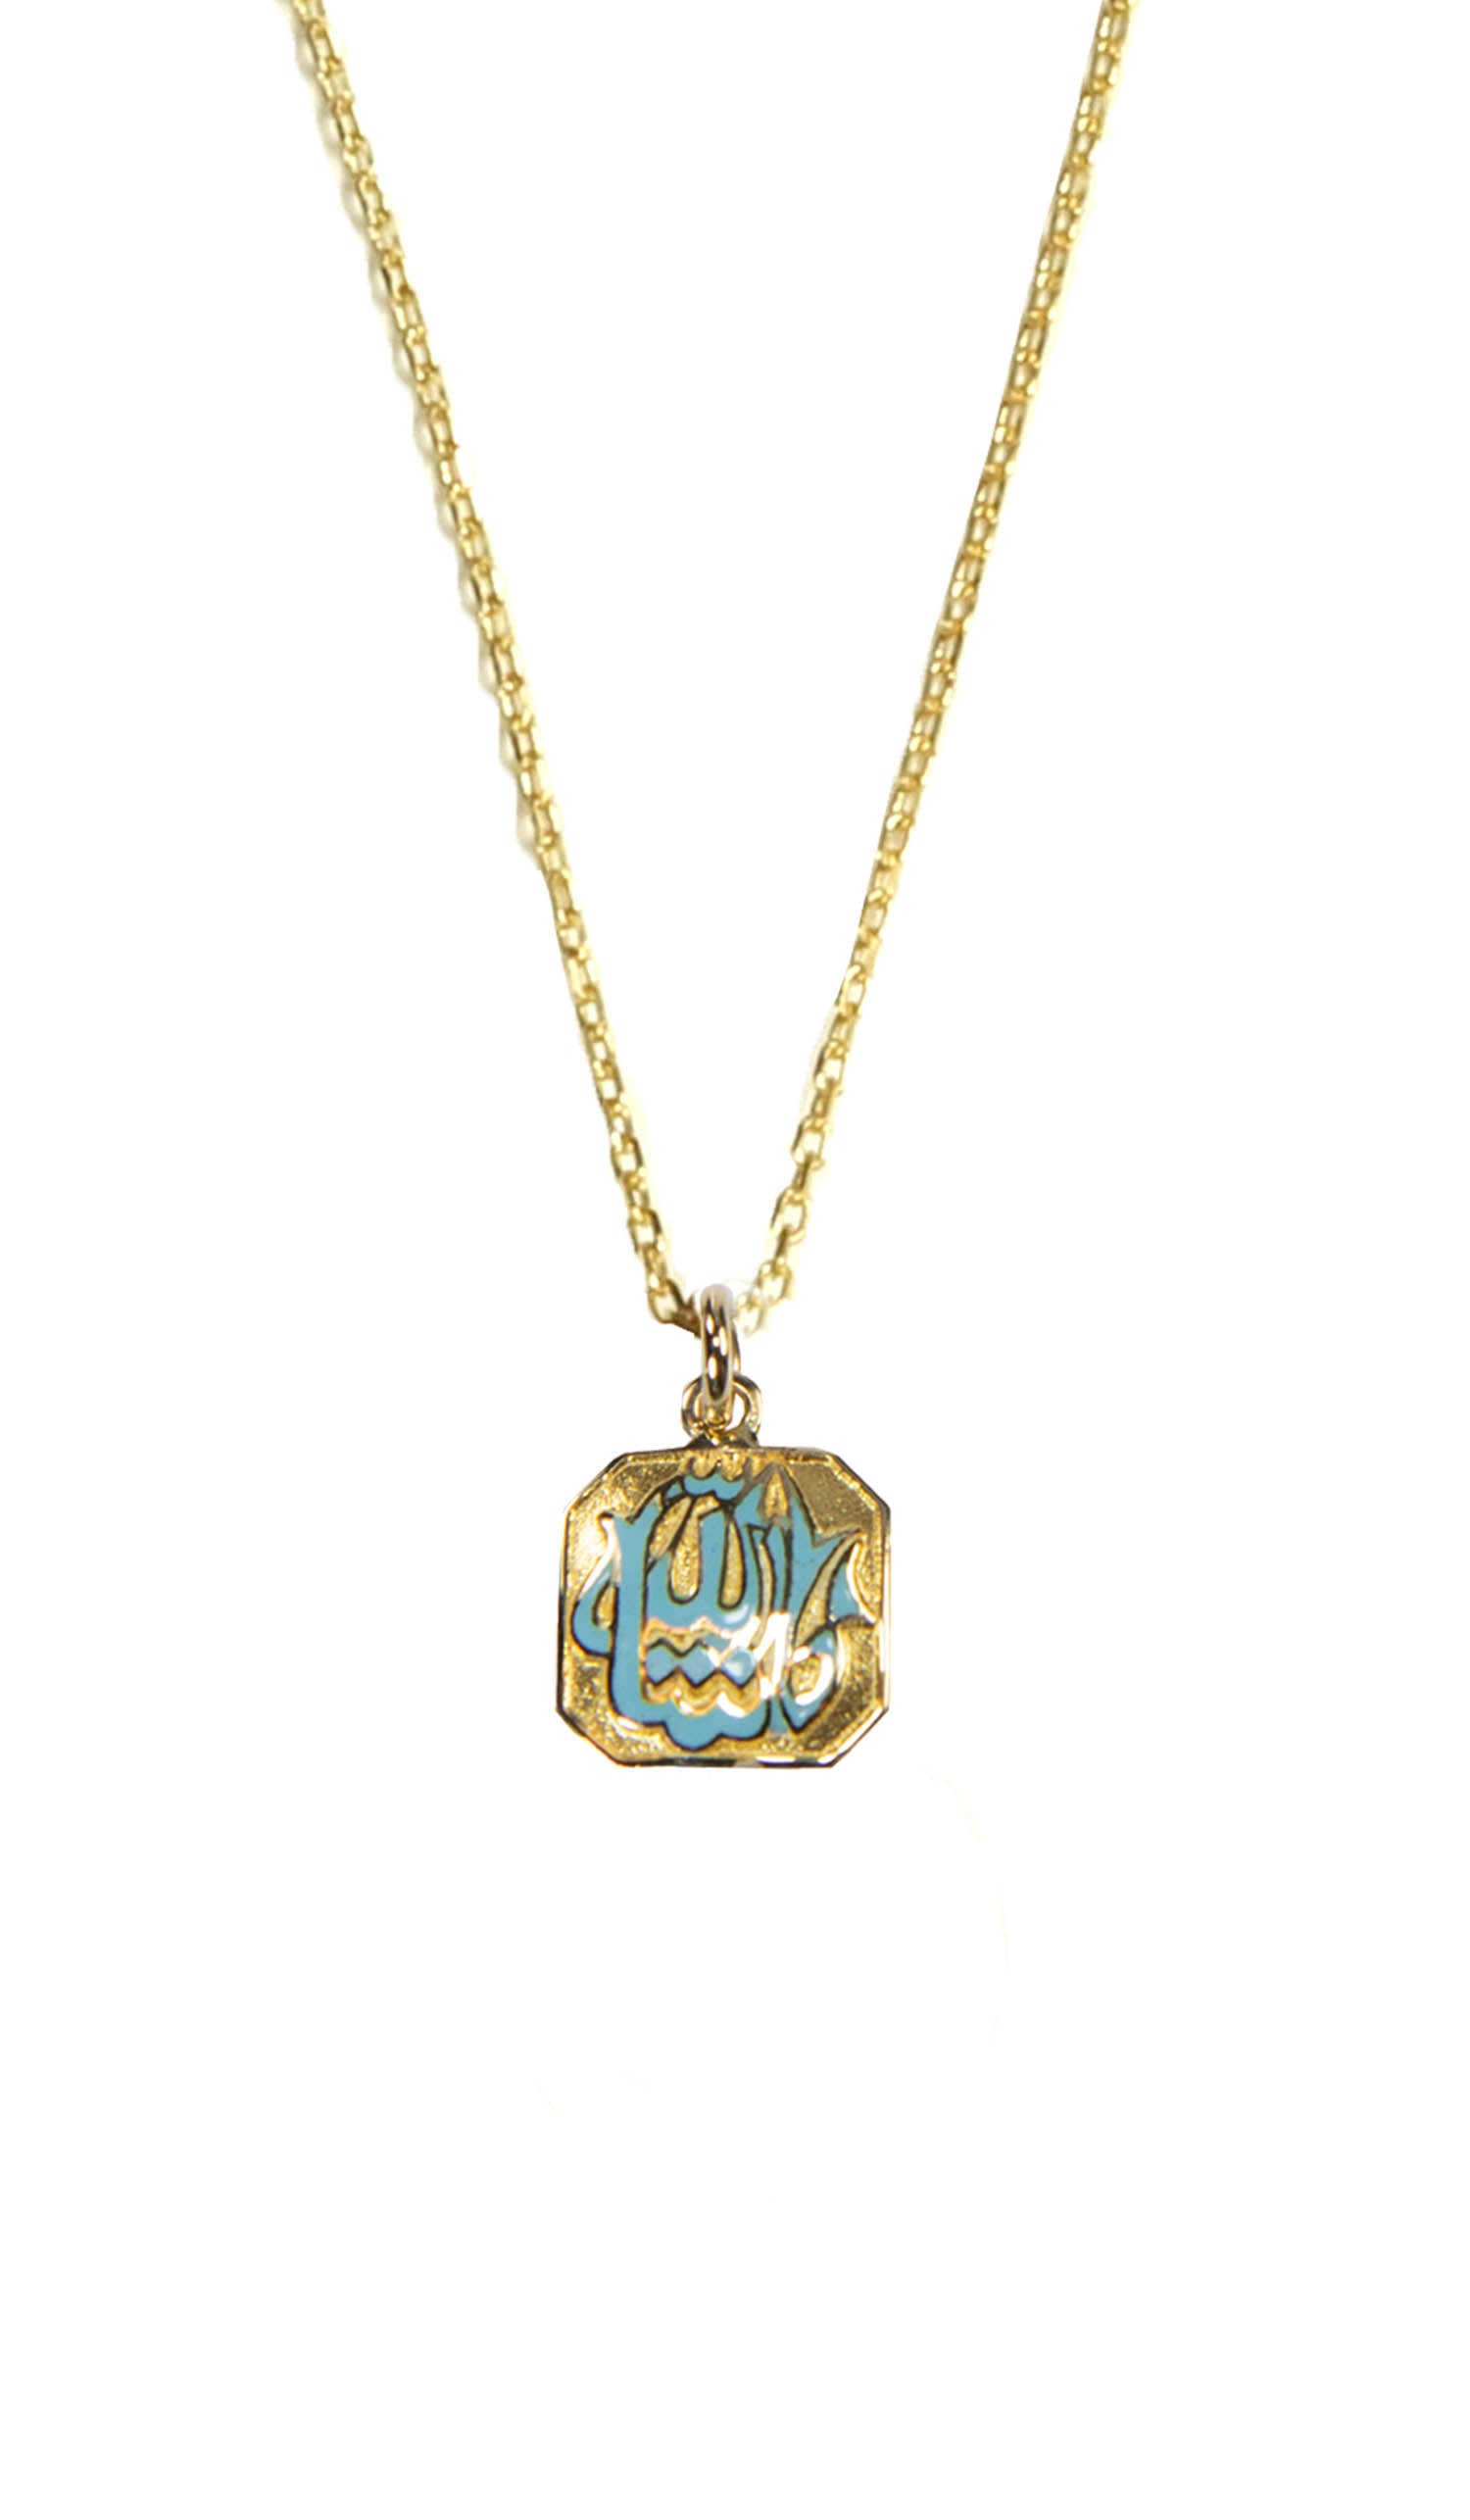 Fine 14kt Gold Square MashAllah (Praise) Necklace-Blue